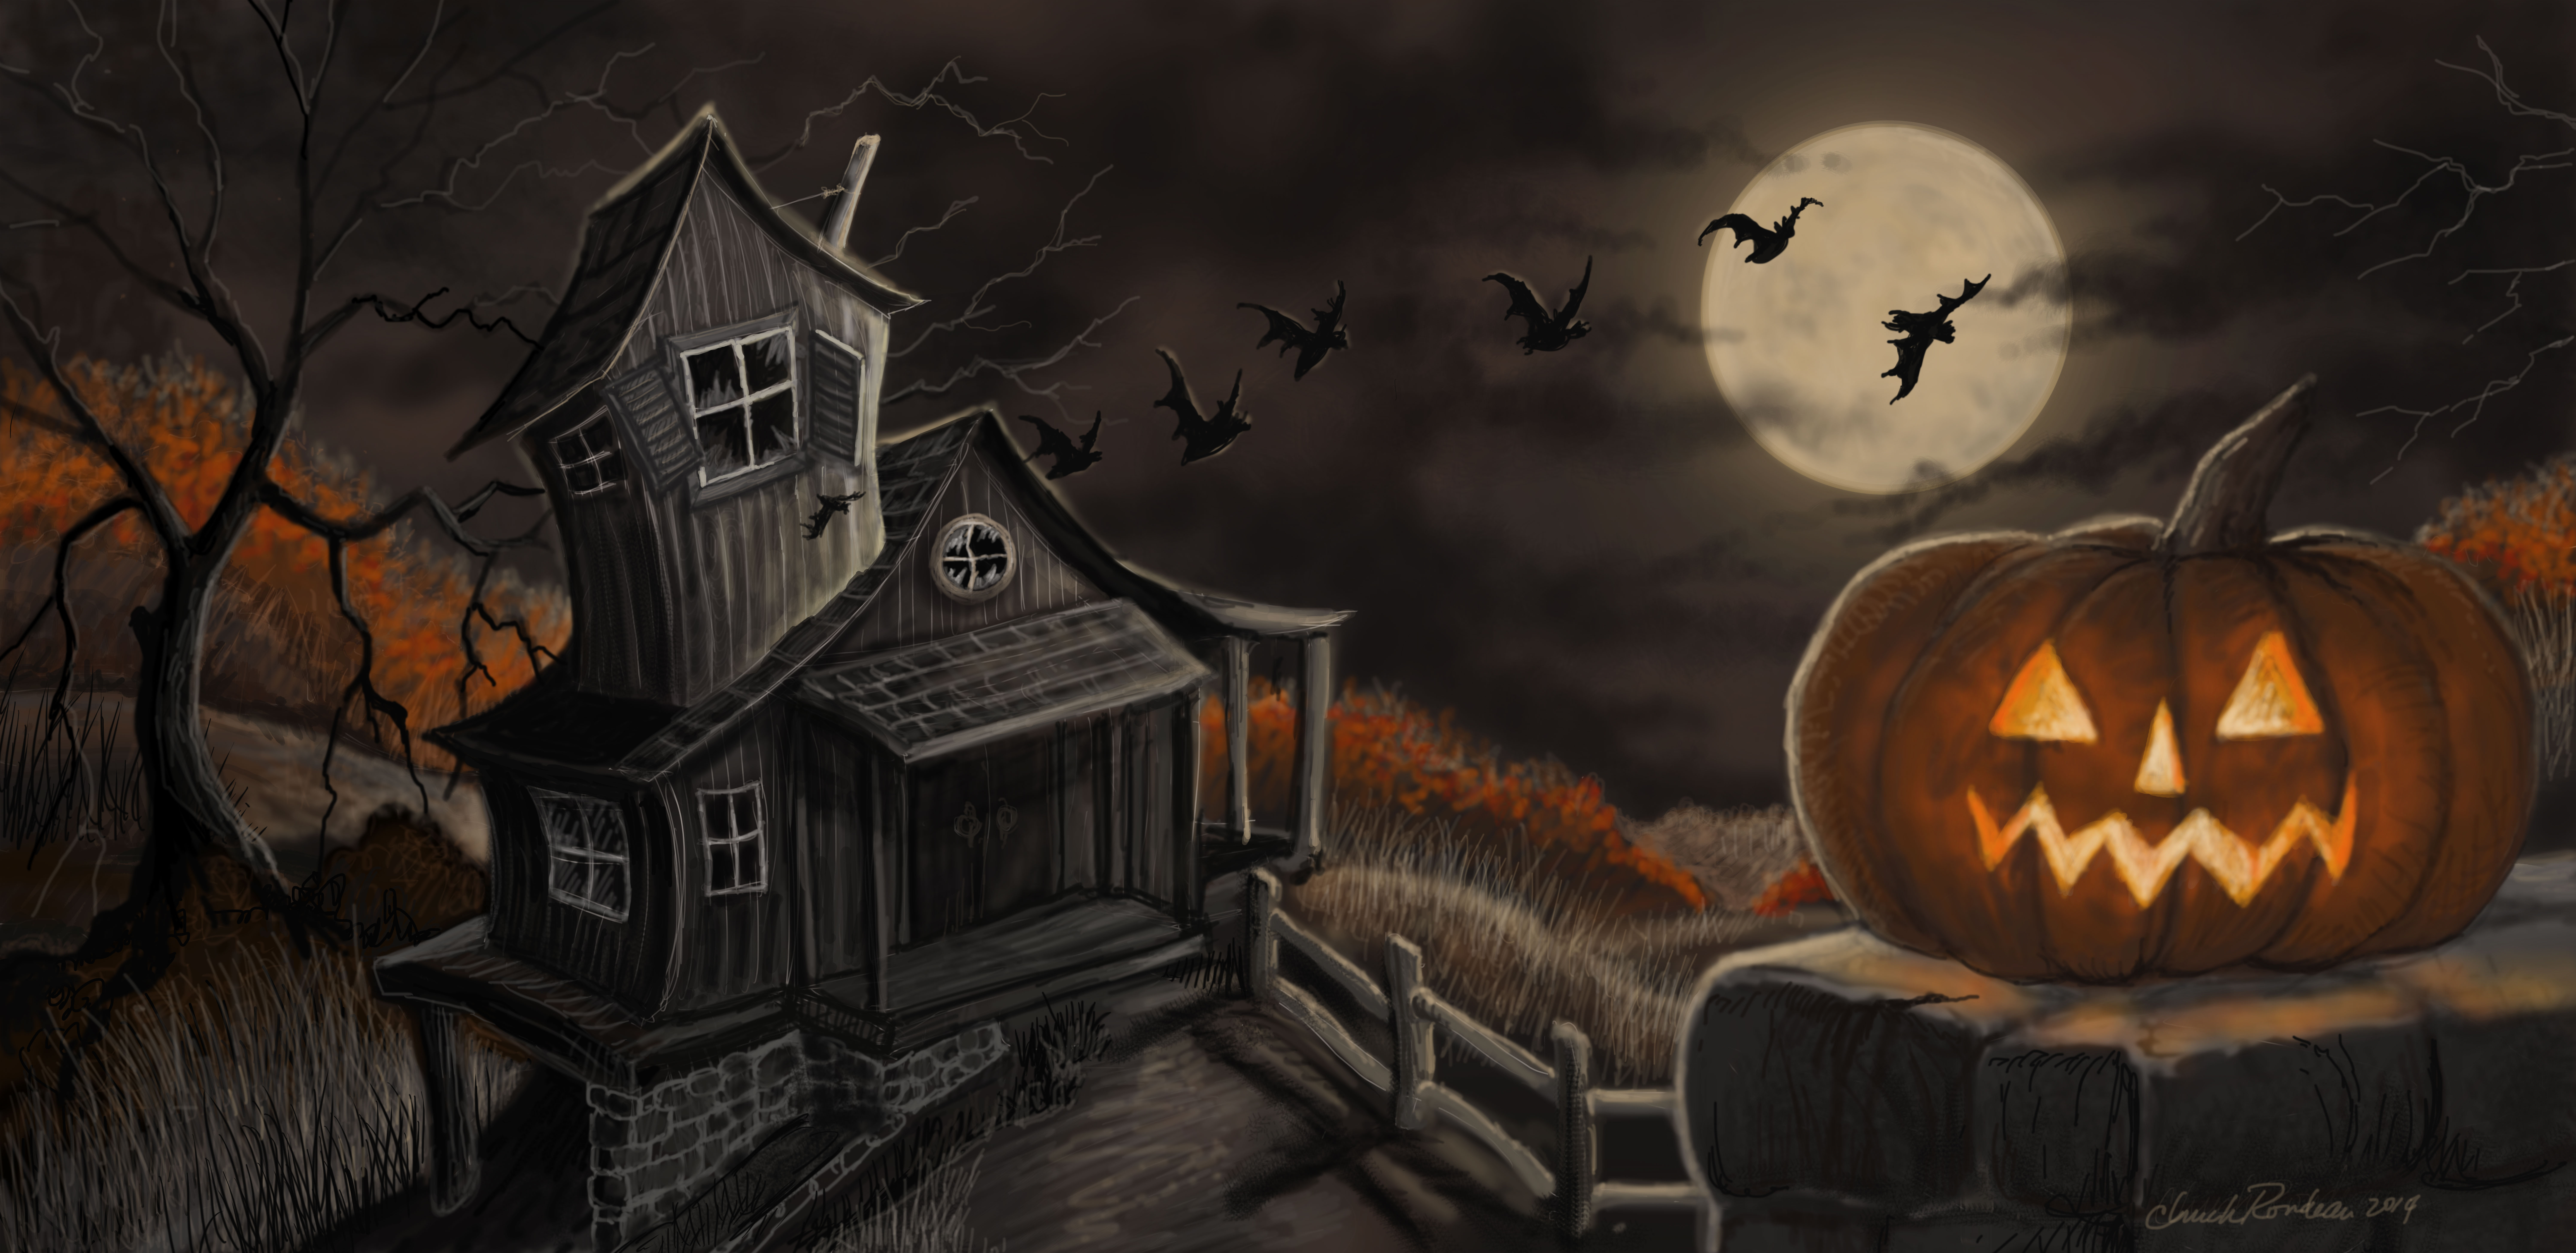 Halloween 8k Ultra HD Wallpaper and Background Image | 12000x5836 ...